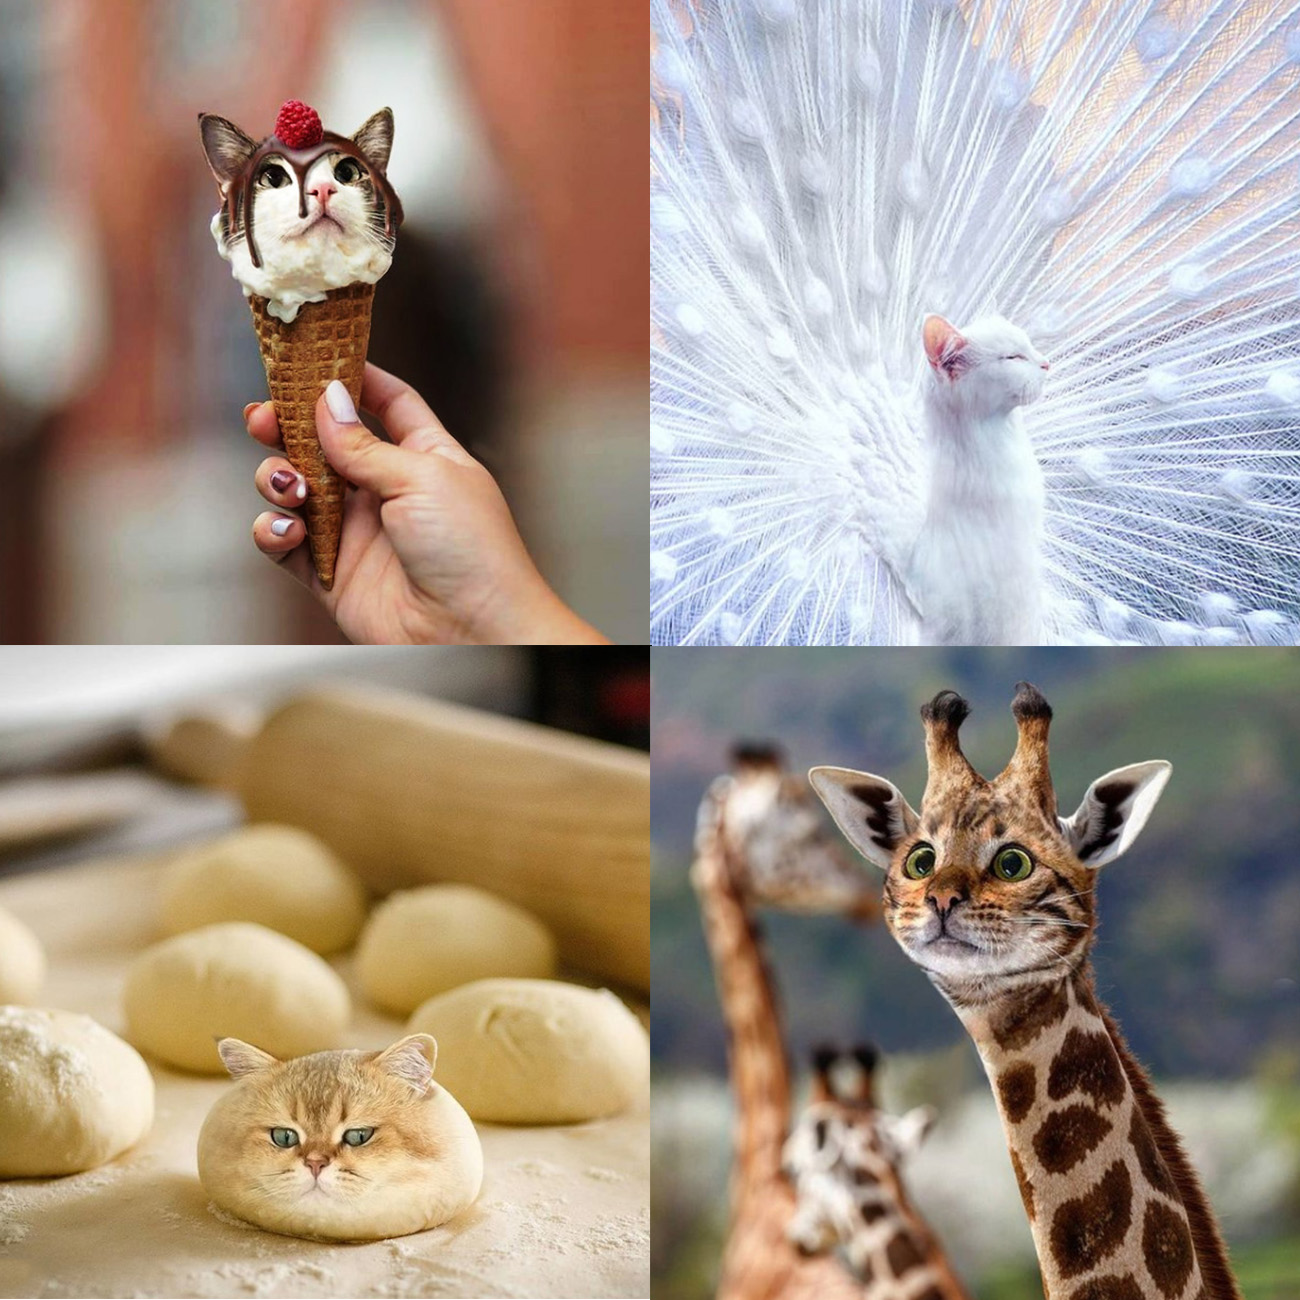 Collage of cat faces photoshopped onto an ice cream cone, peacock, ball of dough and giraffe